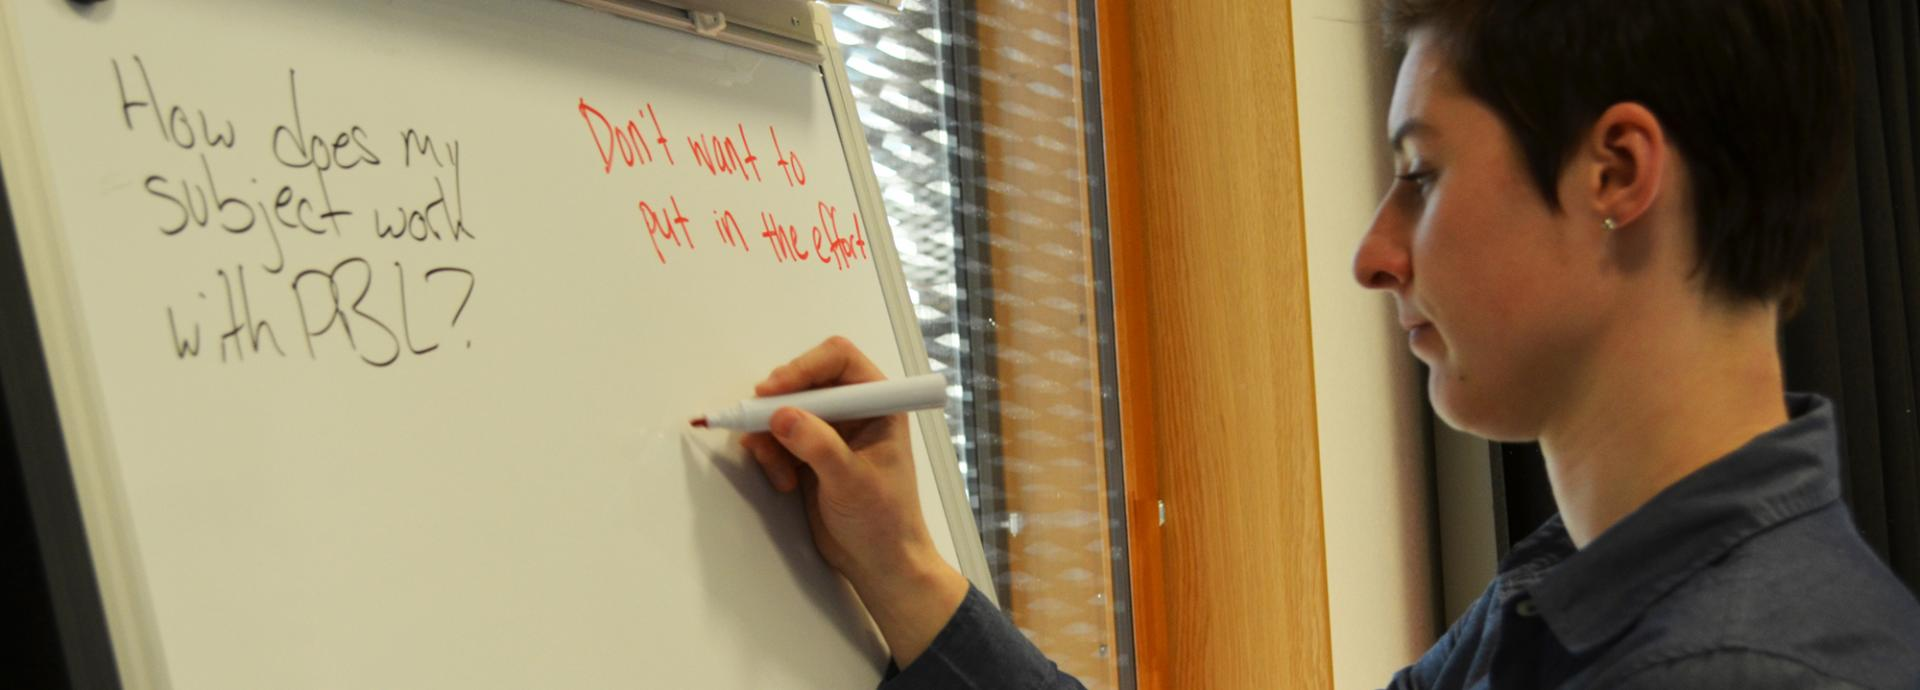 A student writing with a red marker on a white board with questions on it